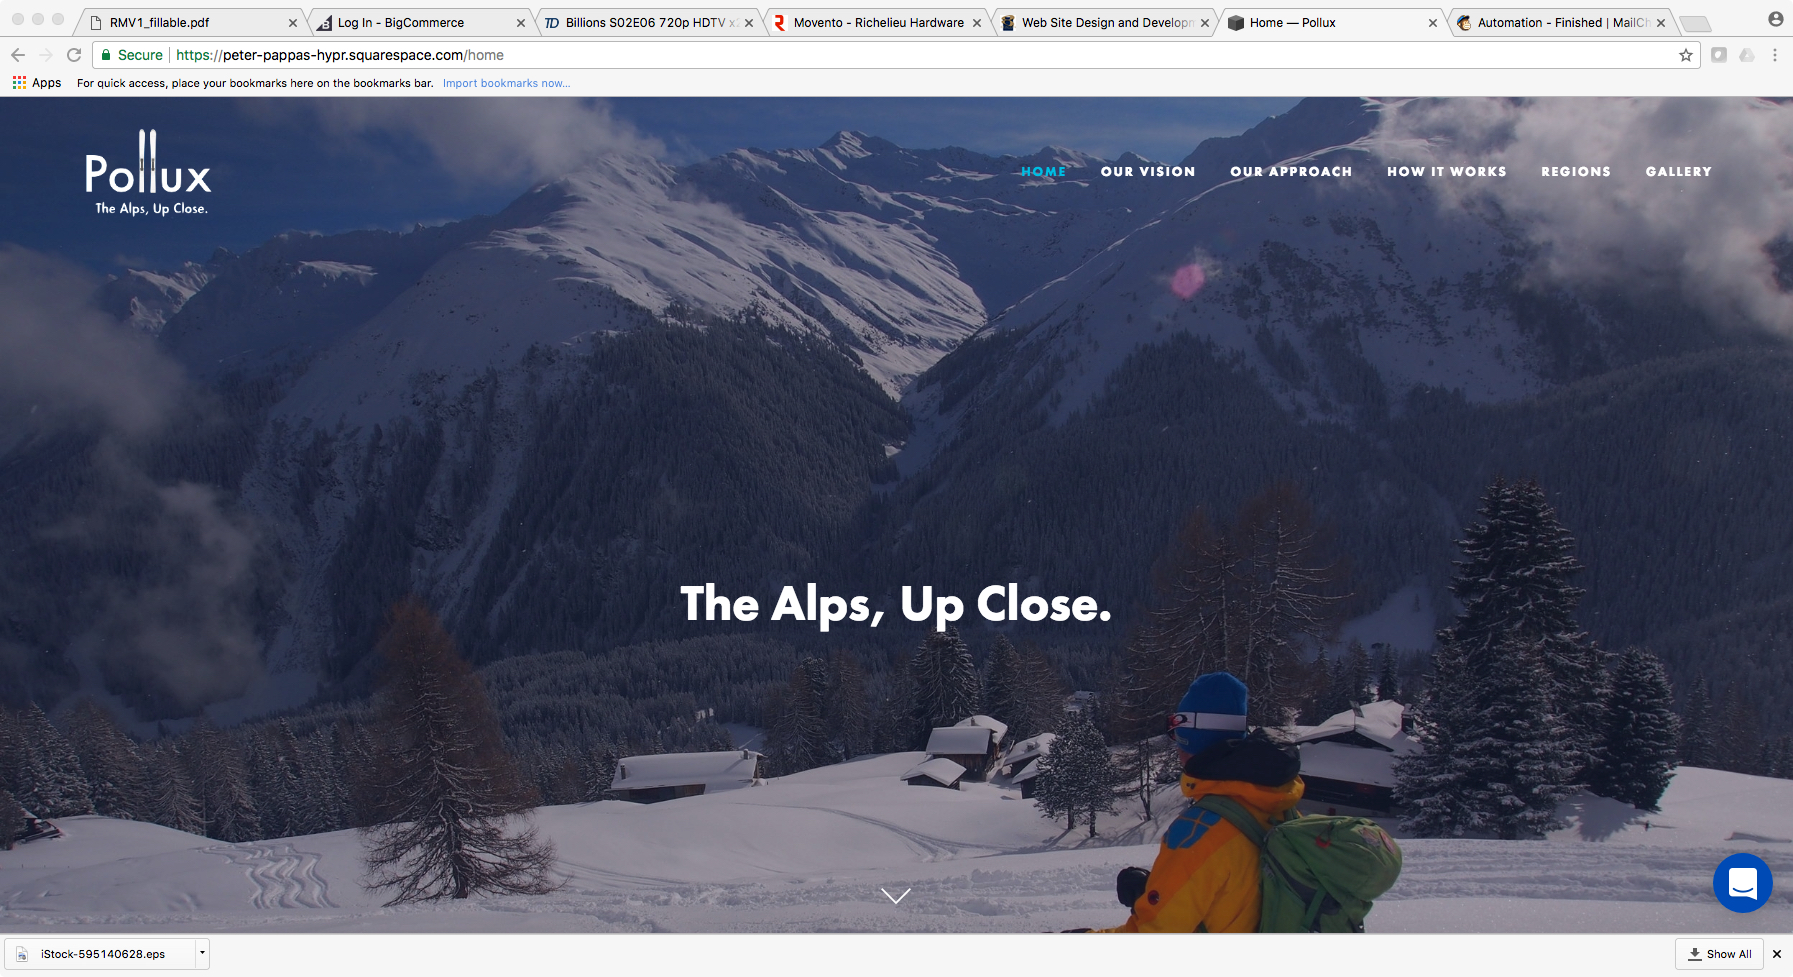 Pollux Mountain Guides - Pollux Mountain Guides works with a discerning clientele to deliver highly customized ski journeys in the Alps. Specializing in off-piste skiing and snowboarding, they take clients on outdoor and cultural experiences of a lifetime. CHECK OUT THE CAMPAIGN